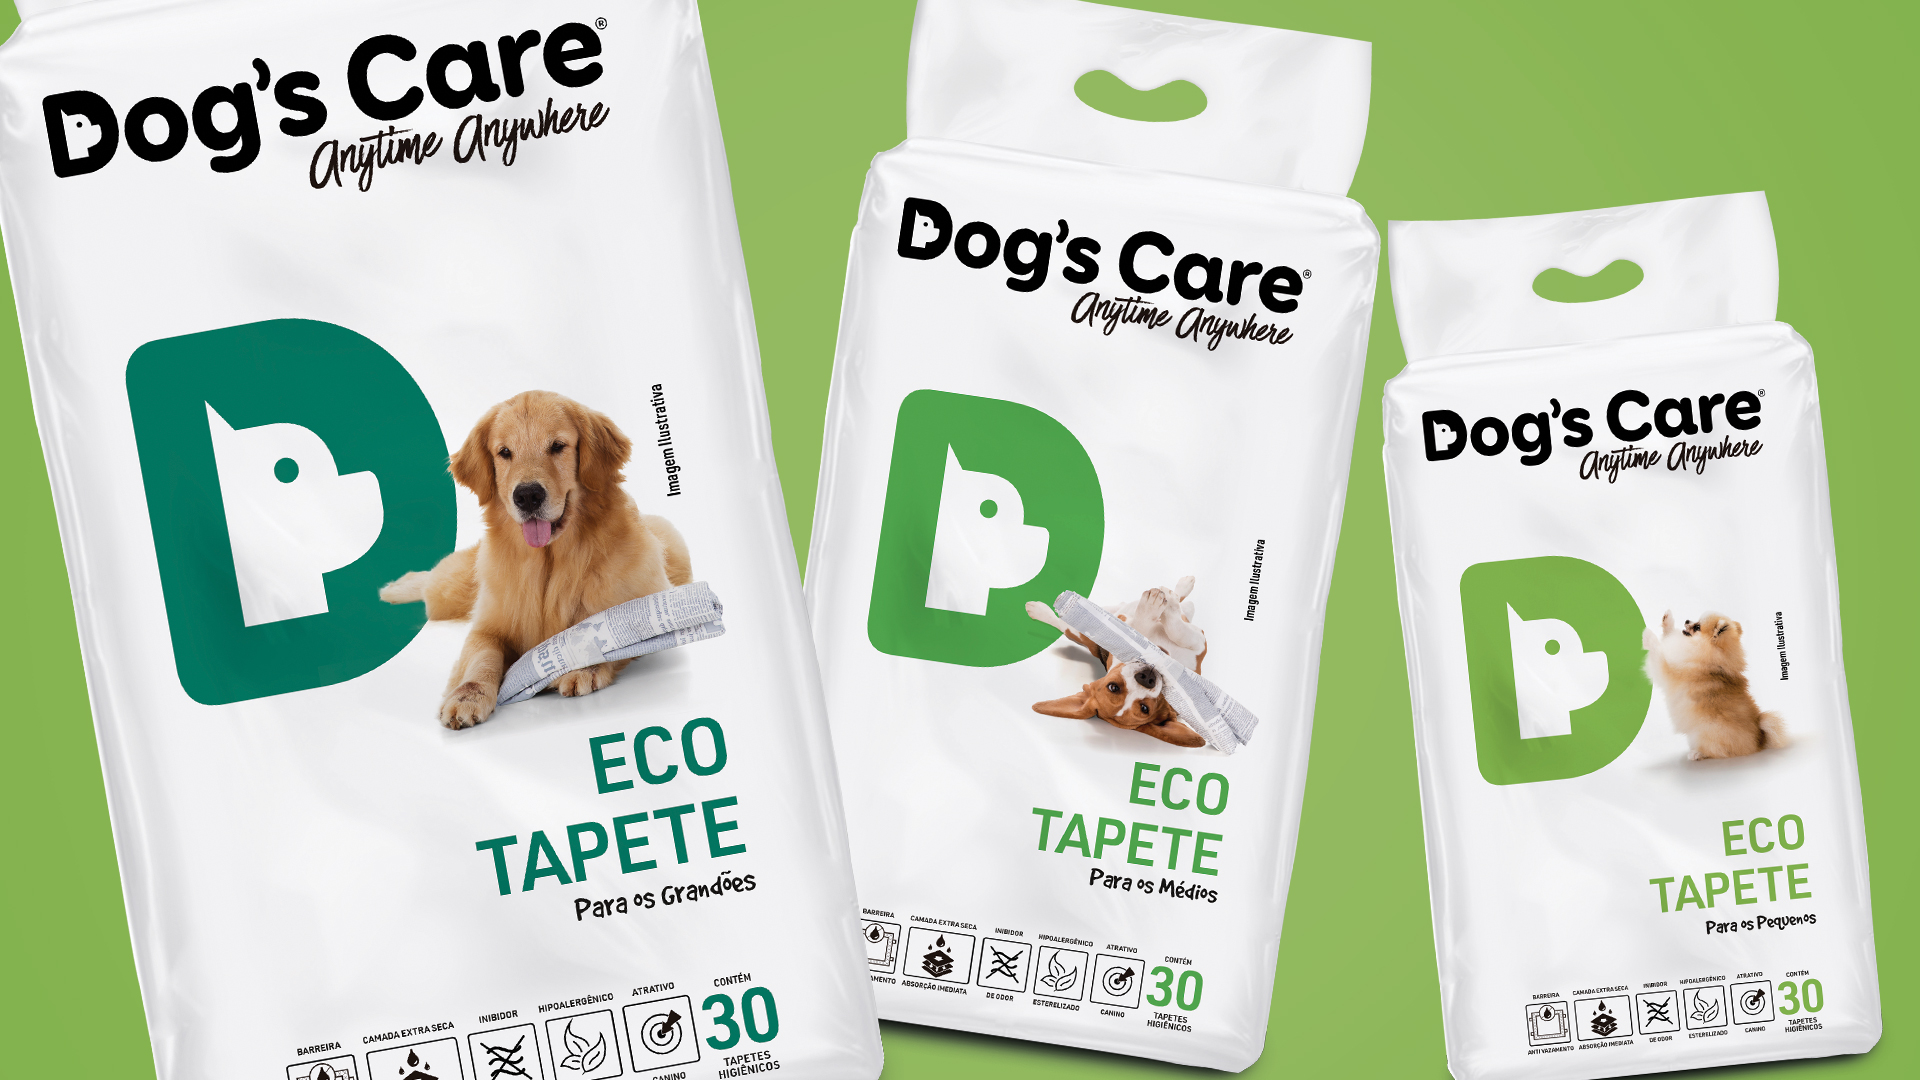 Dogs Care Packshot Zoom